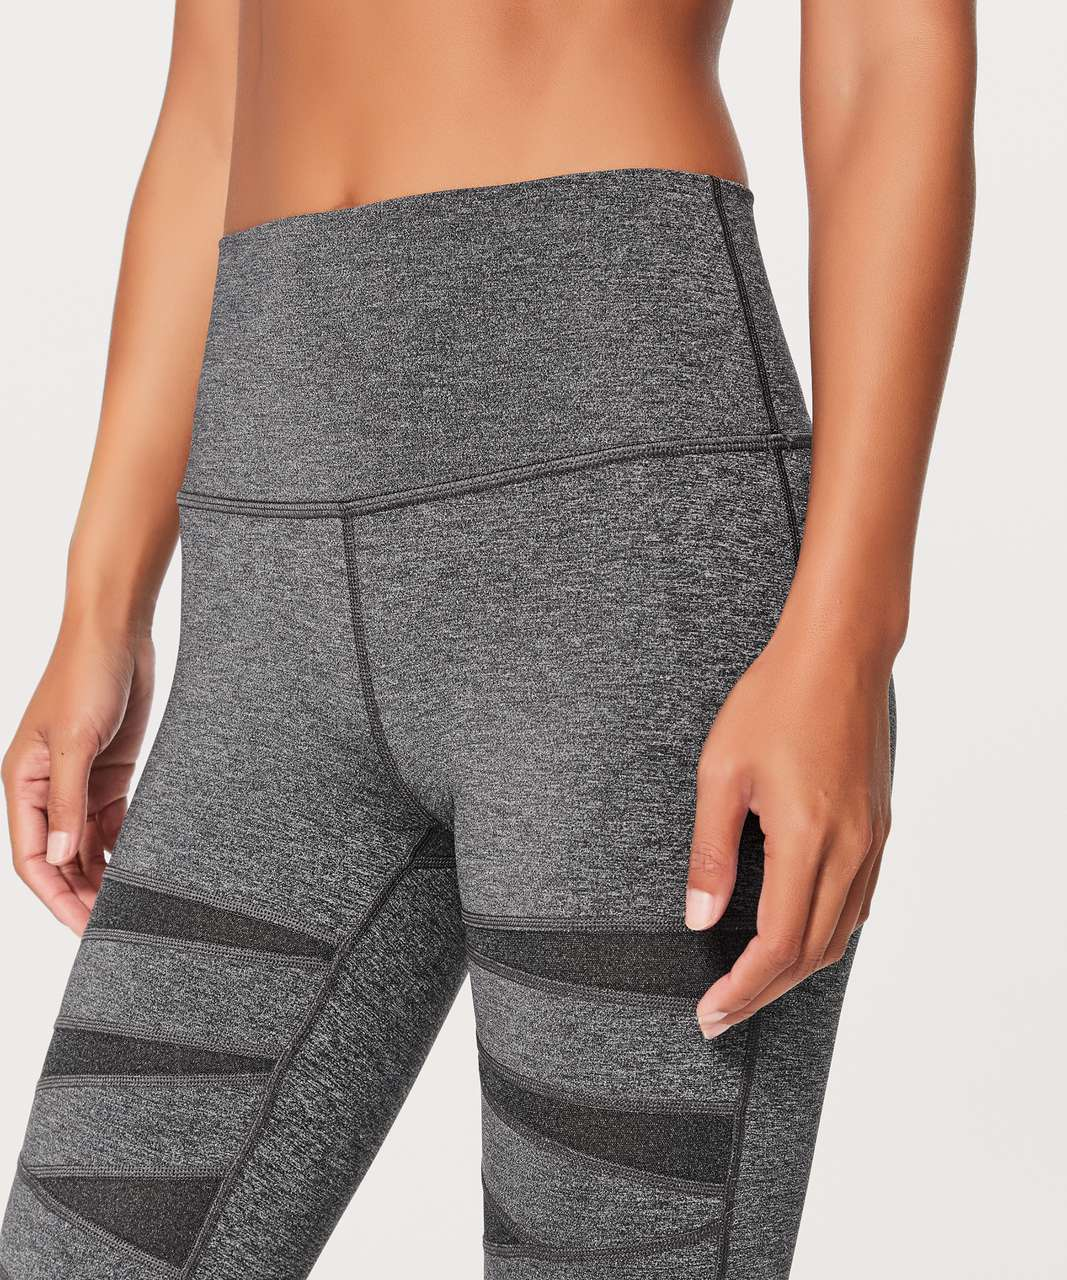 "Lululemon Wunder Under Pant (Hi-Rise) *Special Edition Tech Mesh 28"" - Heathered Black"